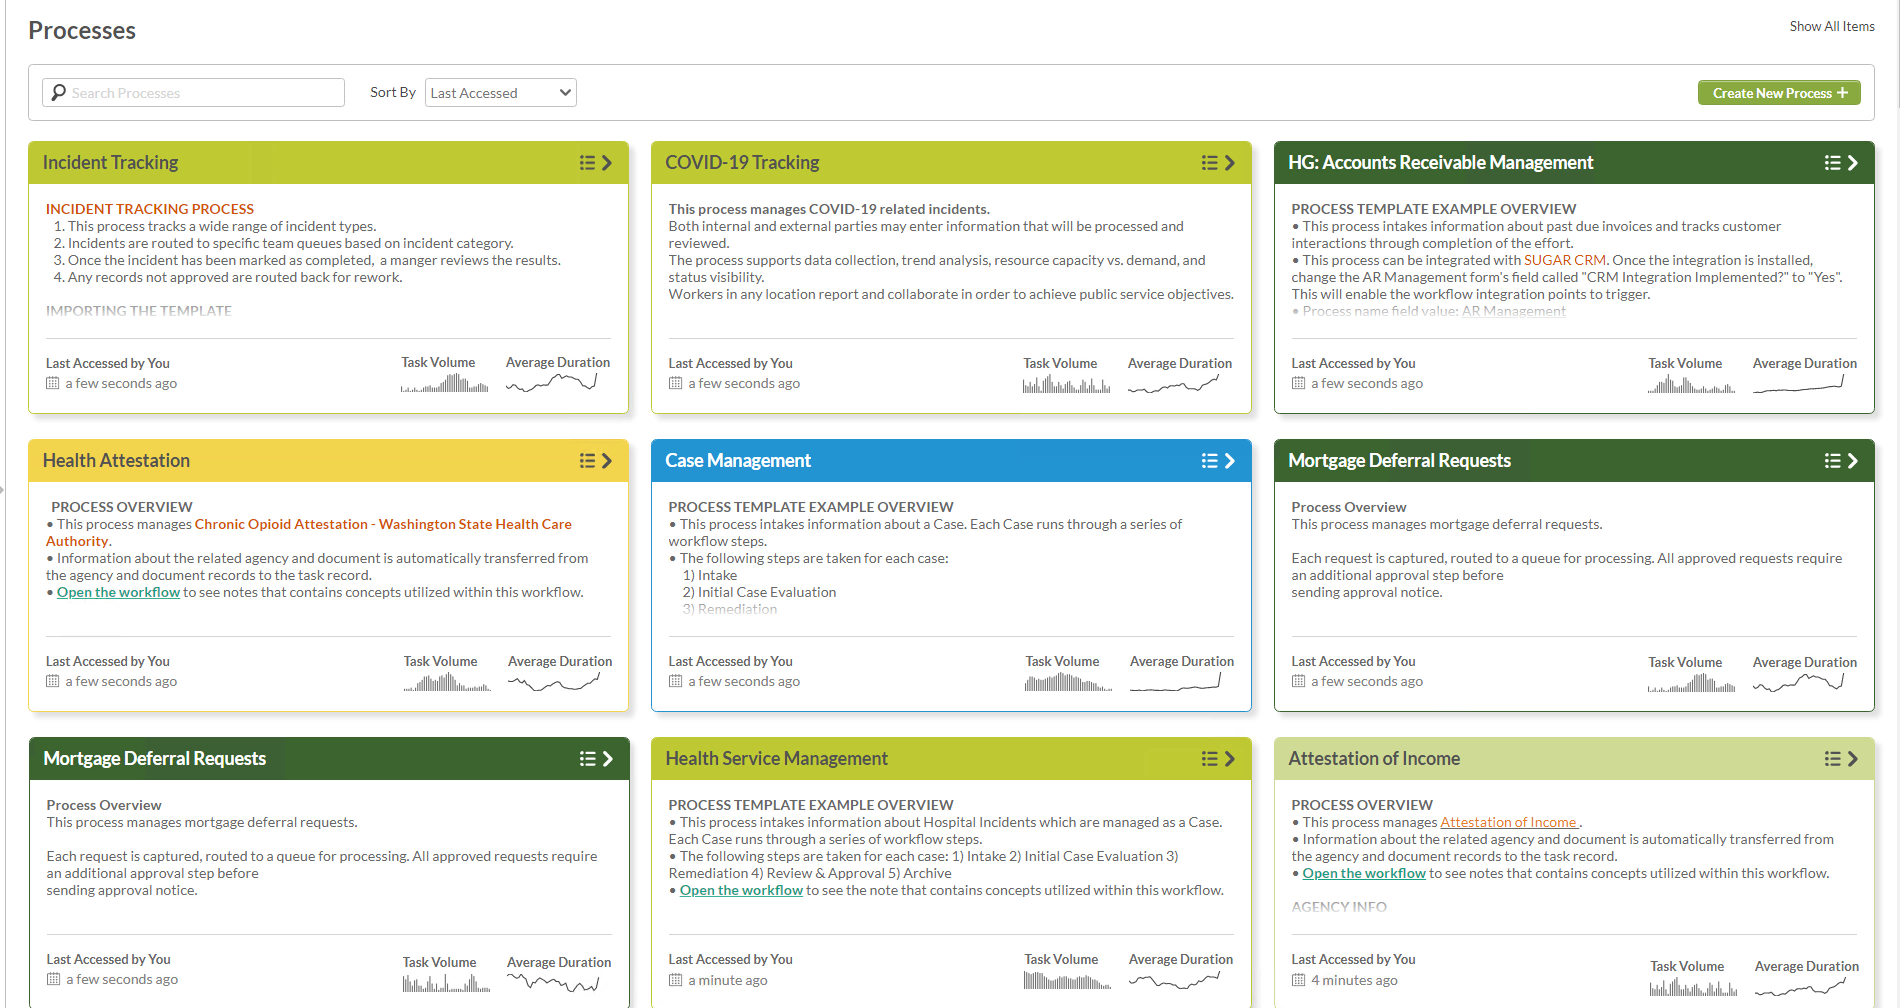 Download starter templates and build your own process library to help pass audits.